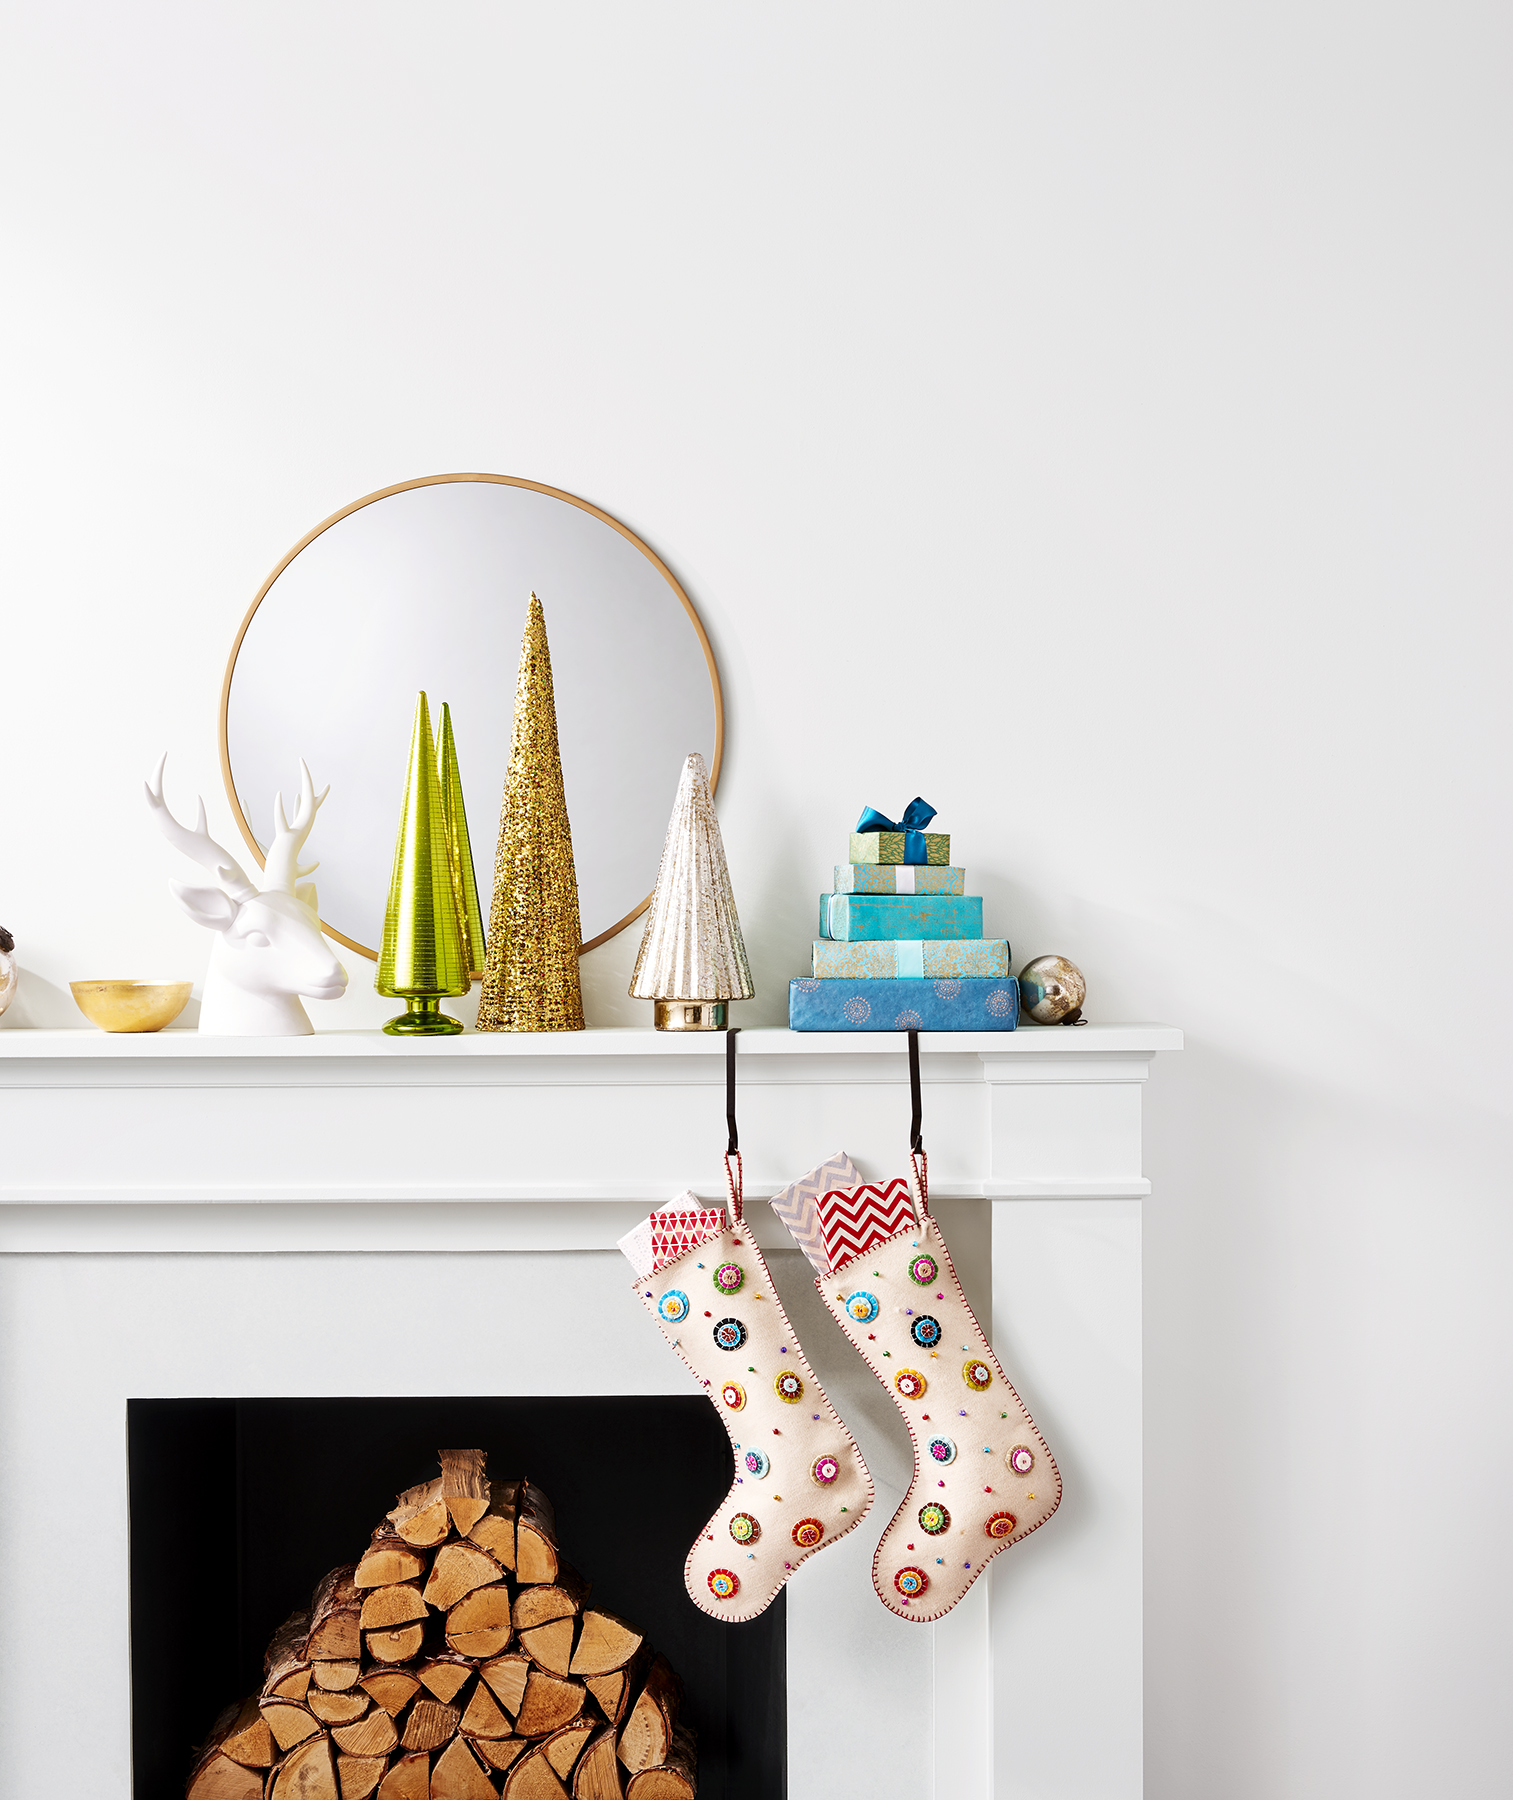 Holiday mantel with bright colored decorations and stockings